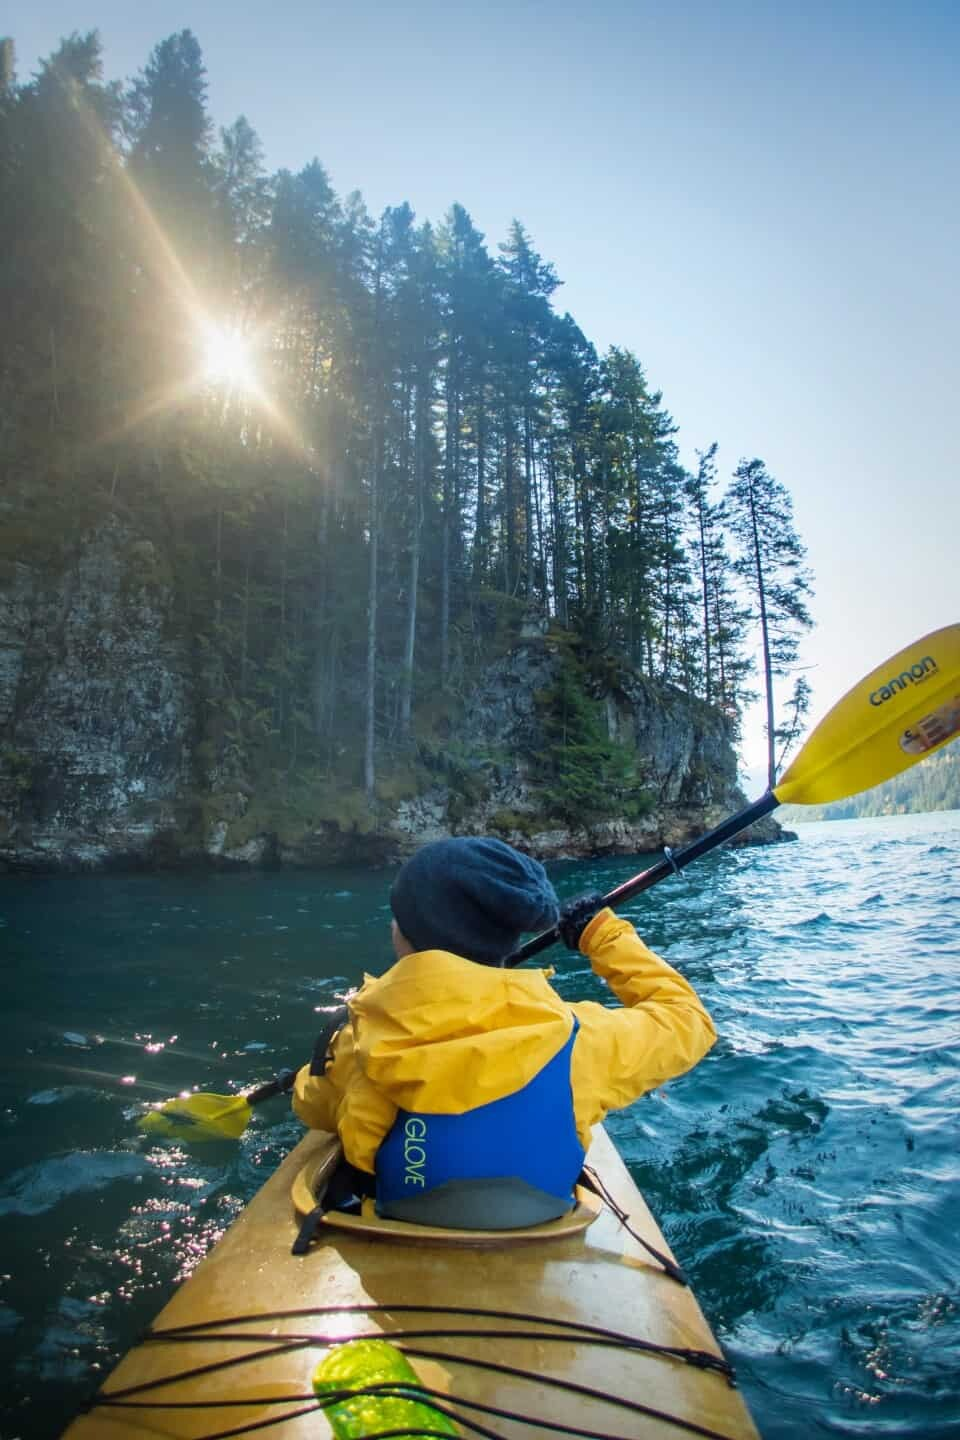 Kayaking on Lake Revelstoke, Canada